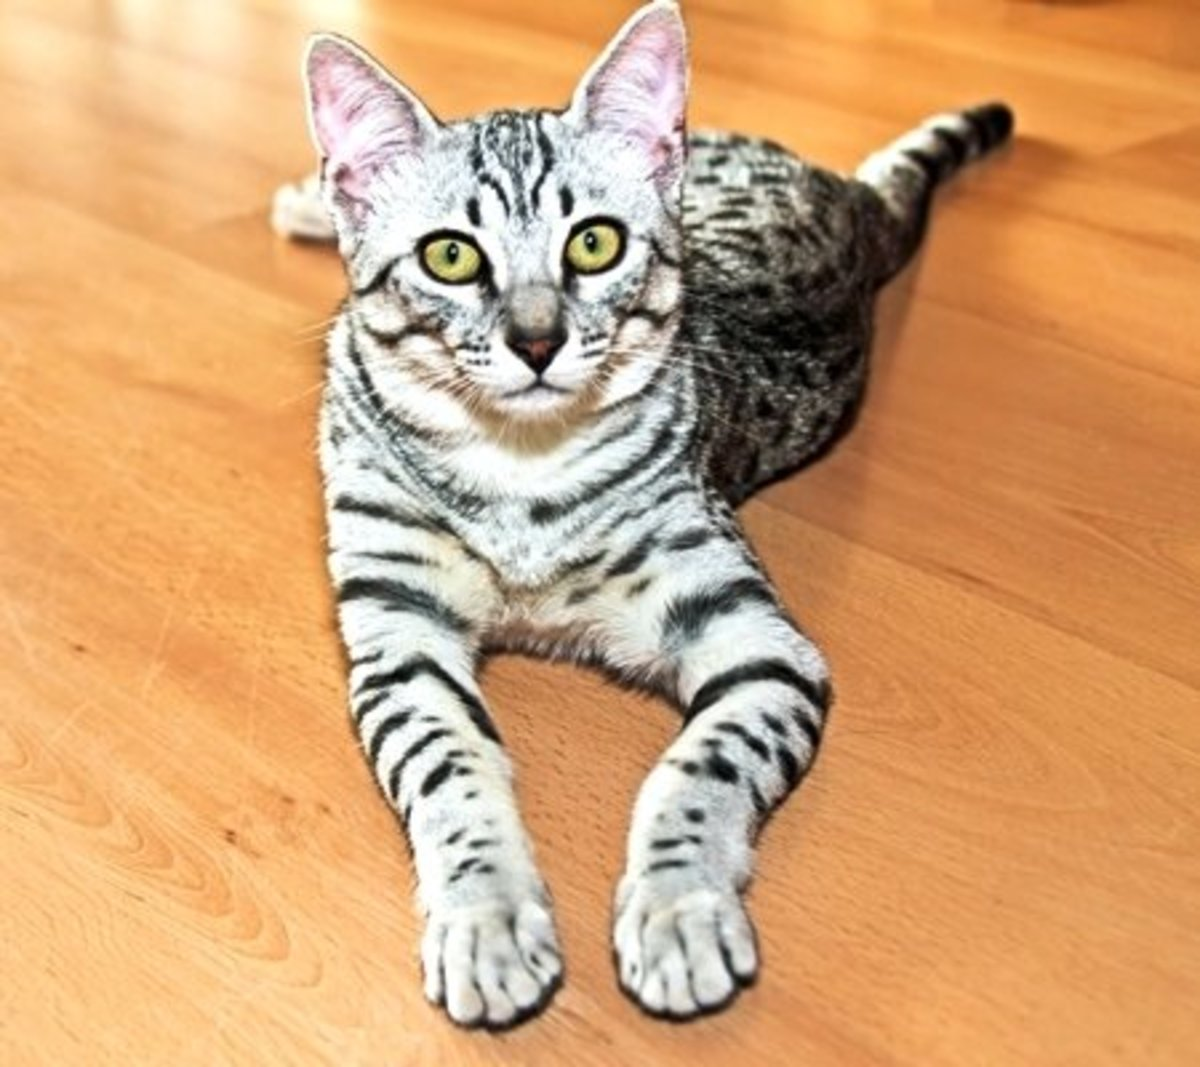 The Egyptian Mau - Cat Breed Information and Care